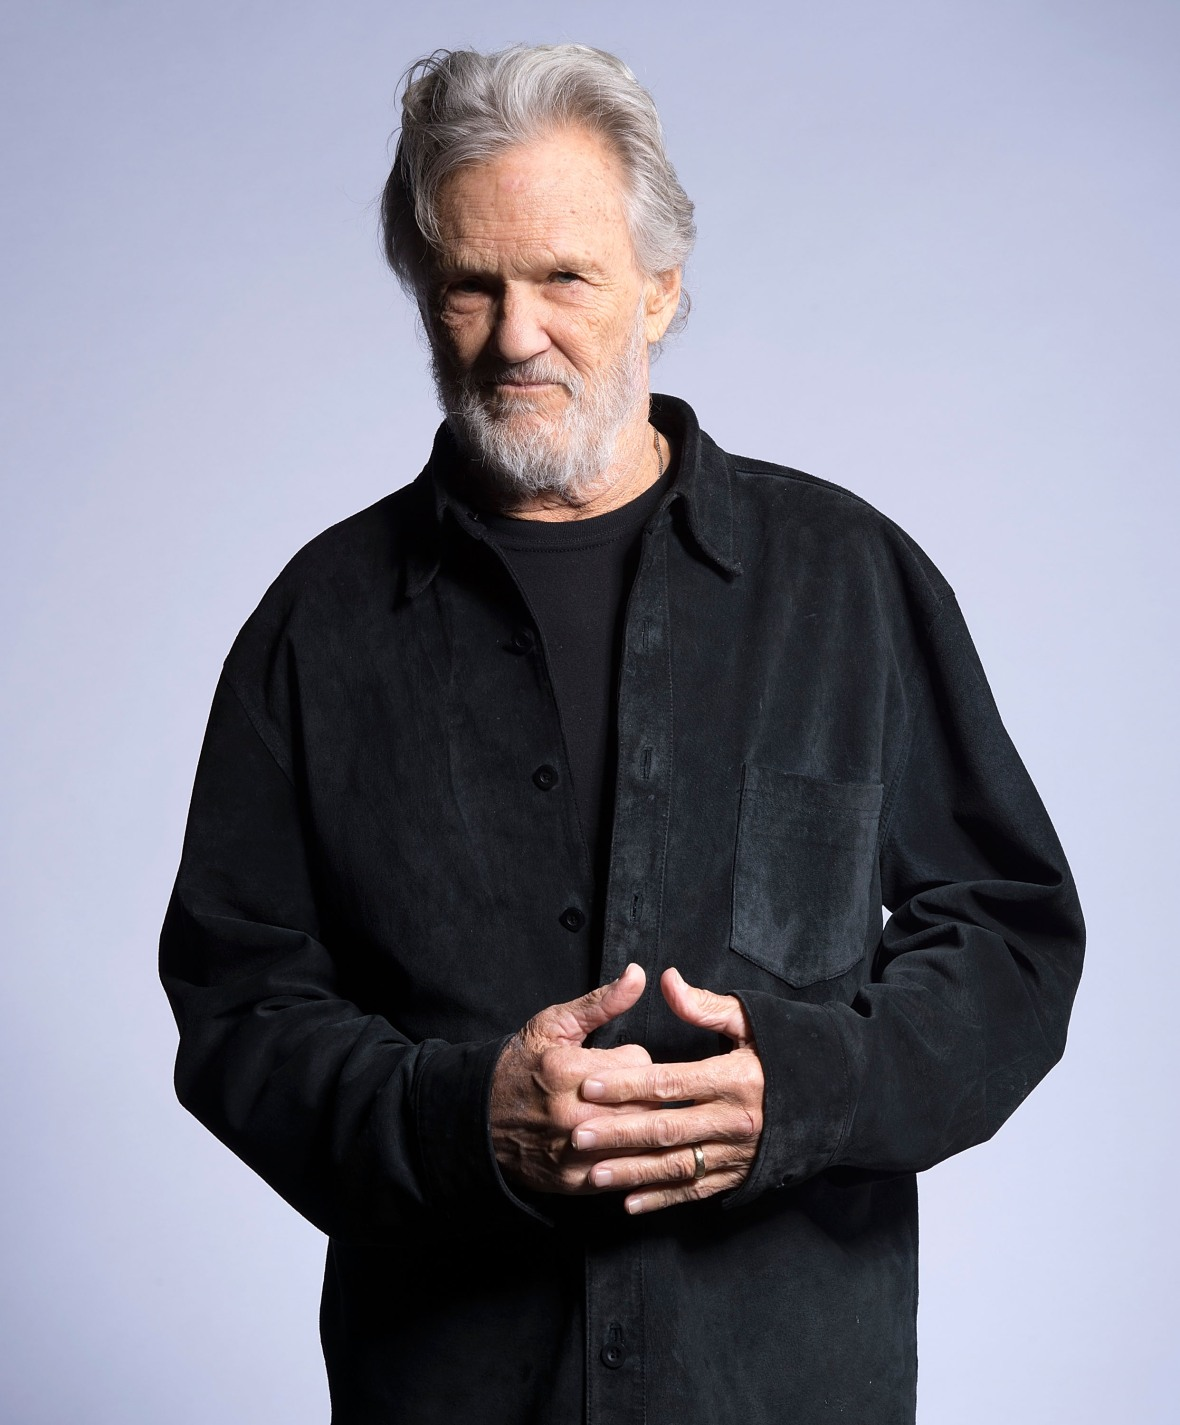 kris kristofferson getty images